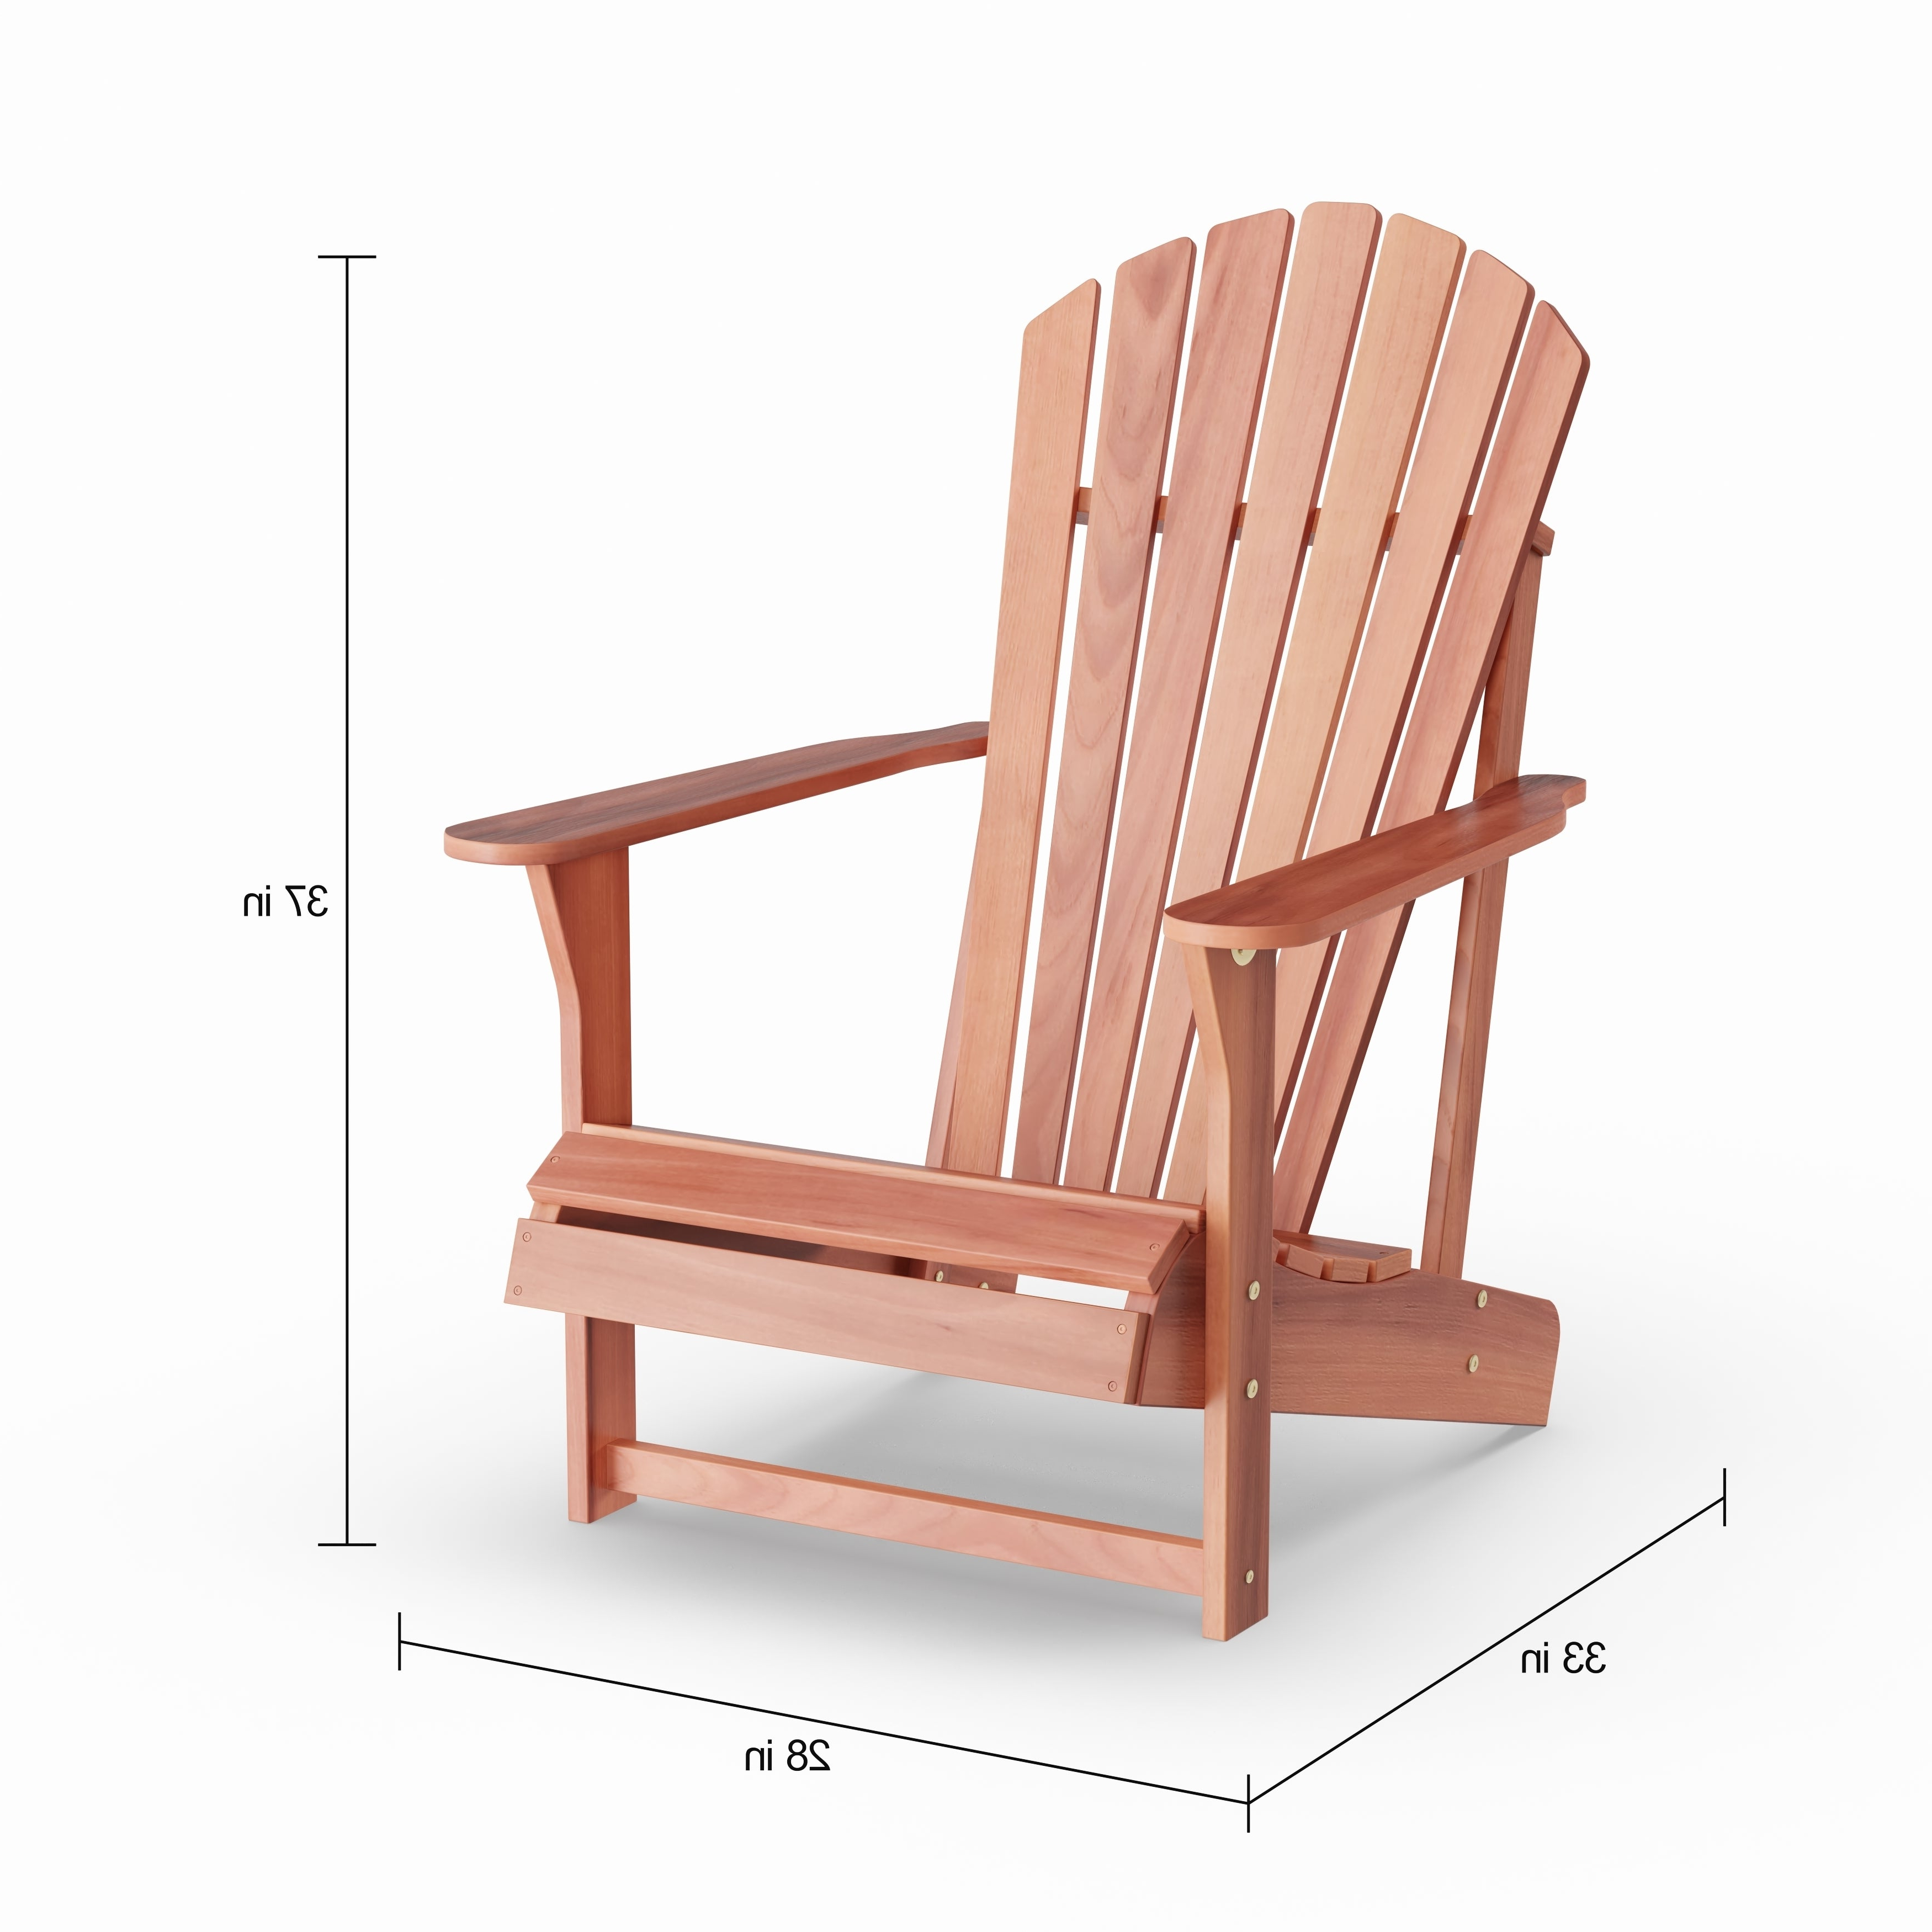 2019 Adirondack Chairs With Footrest Pertaining To Havenside Home Bergen 2 Piece Adirondack Chair With Footrest Set (View 1 of 25)